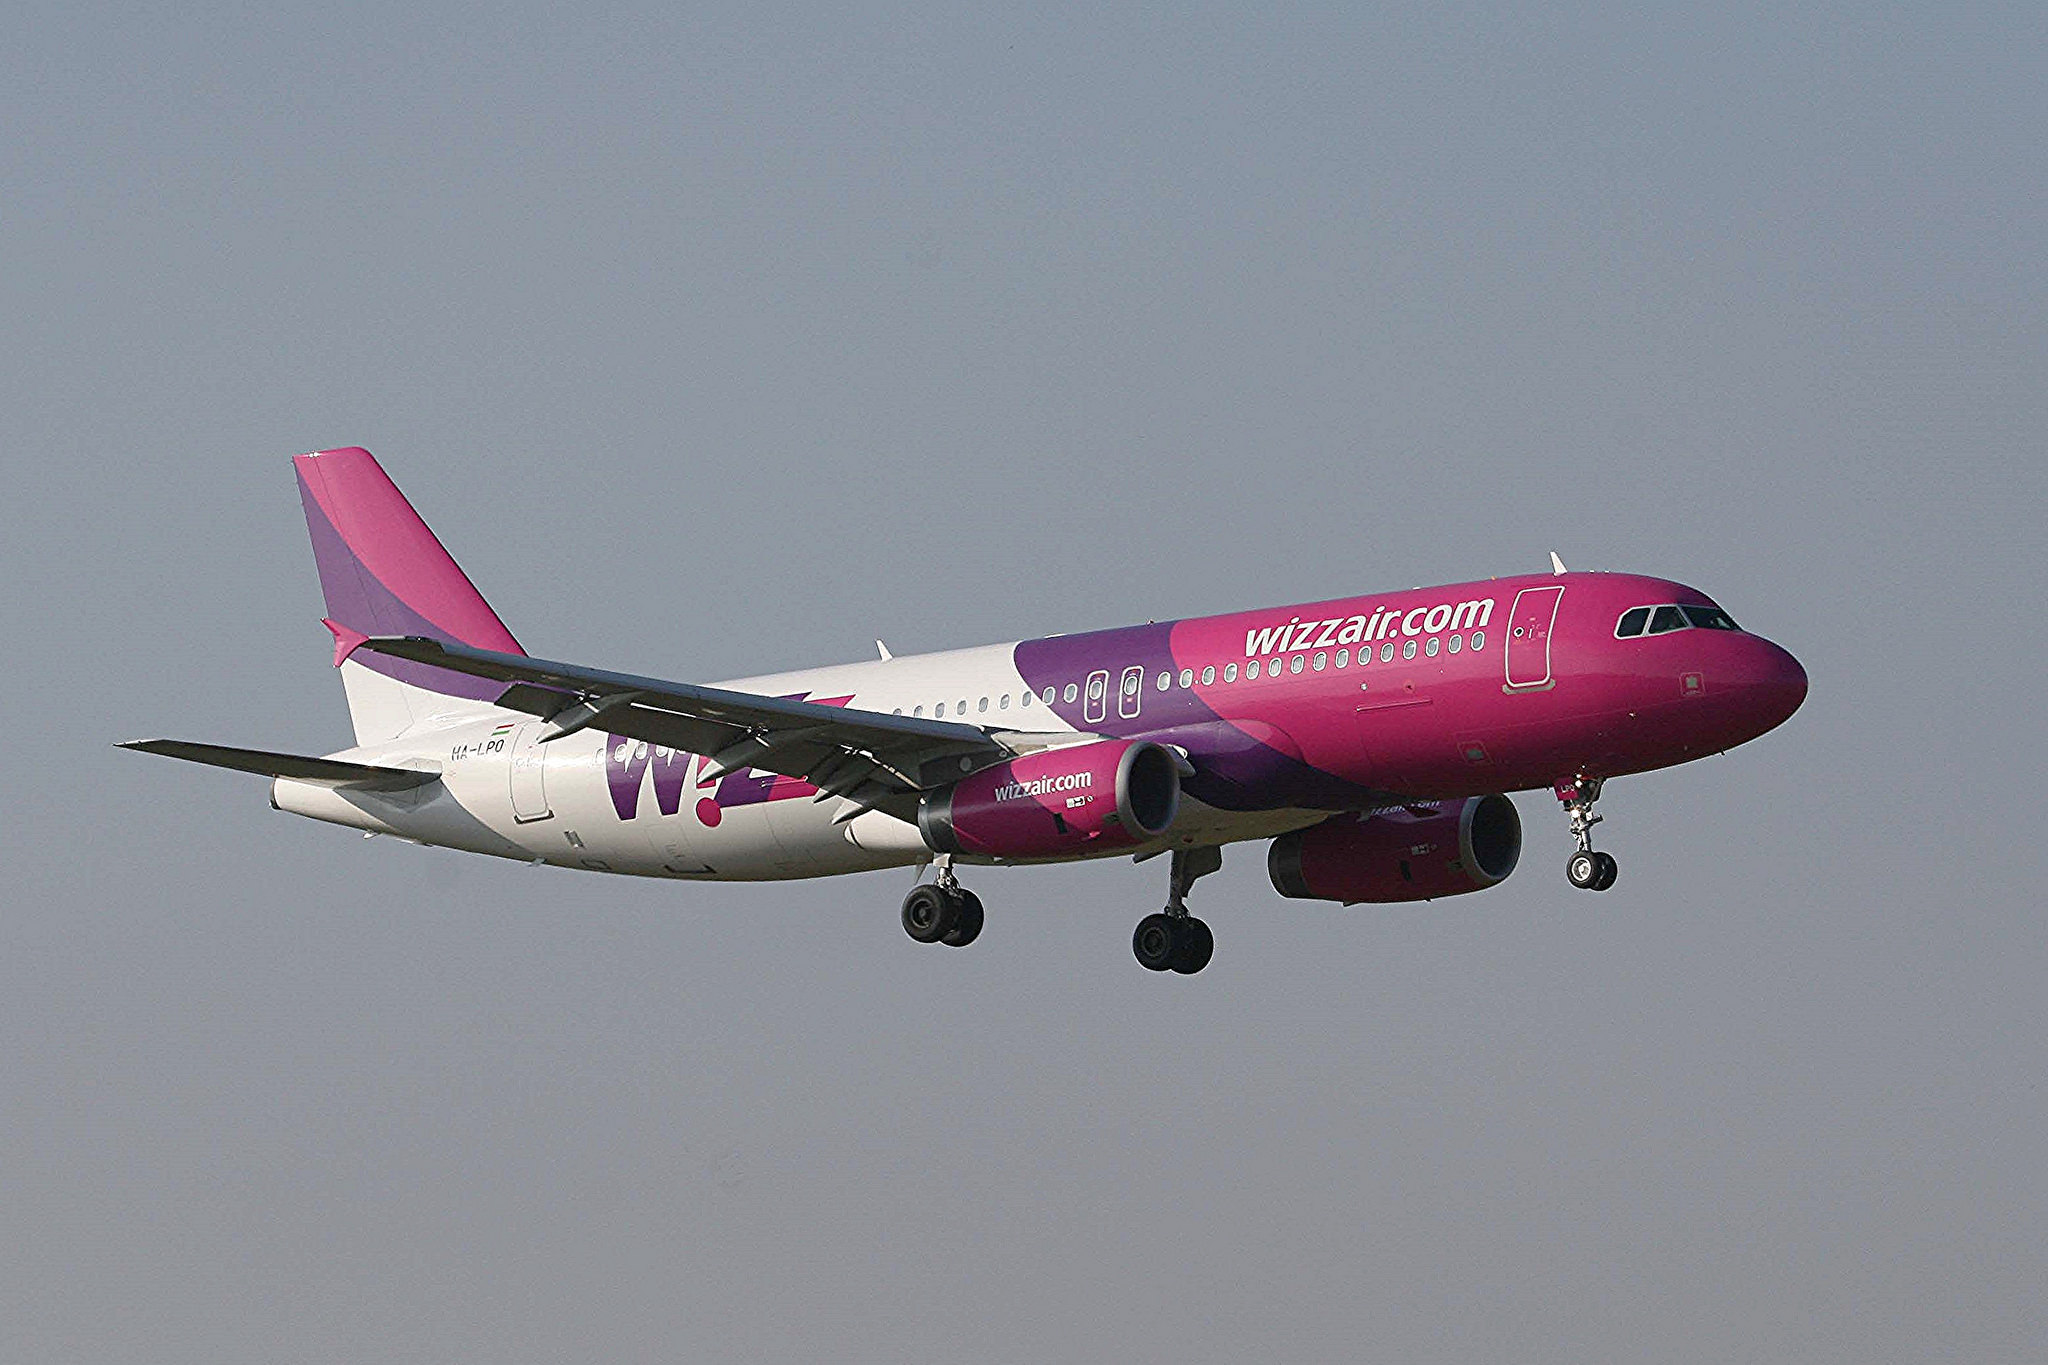 Wizz air aircraft